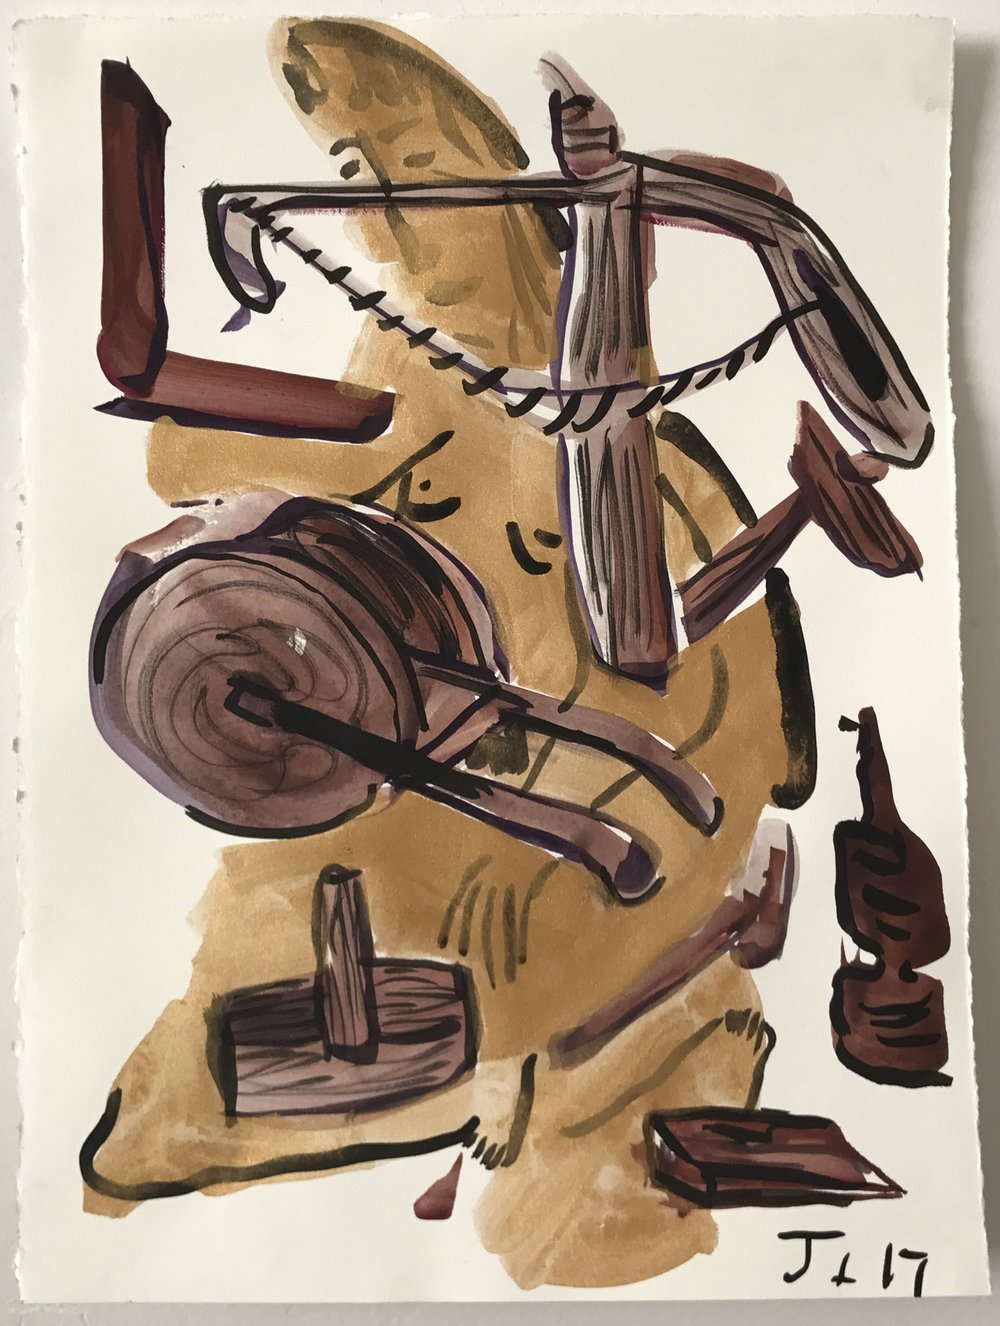 Wooden Tools, 11 x 15 inches, watercolor and ink on paper, 2017.